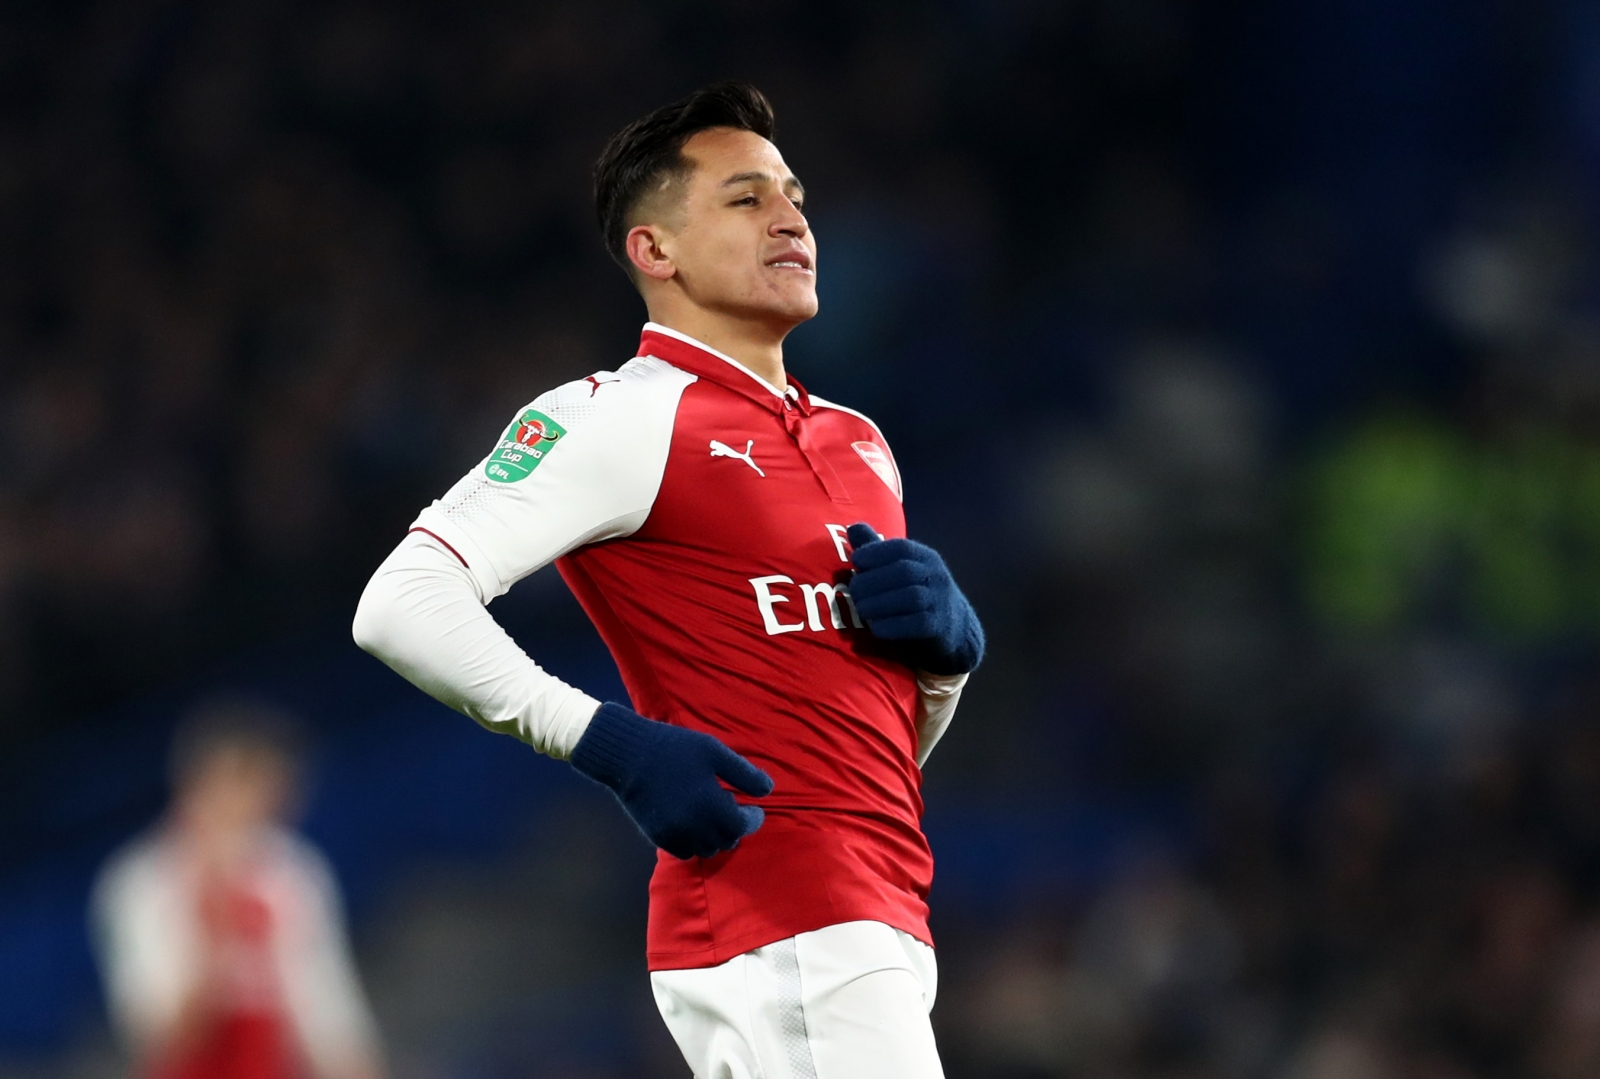 No Alexis Sanchez Or Mesut Ozil - Arsenal Team vs Bournemouth Confirmed